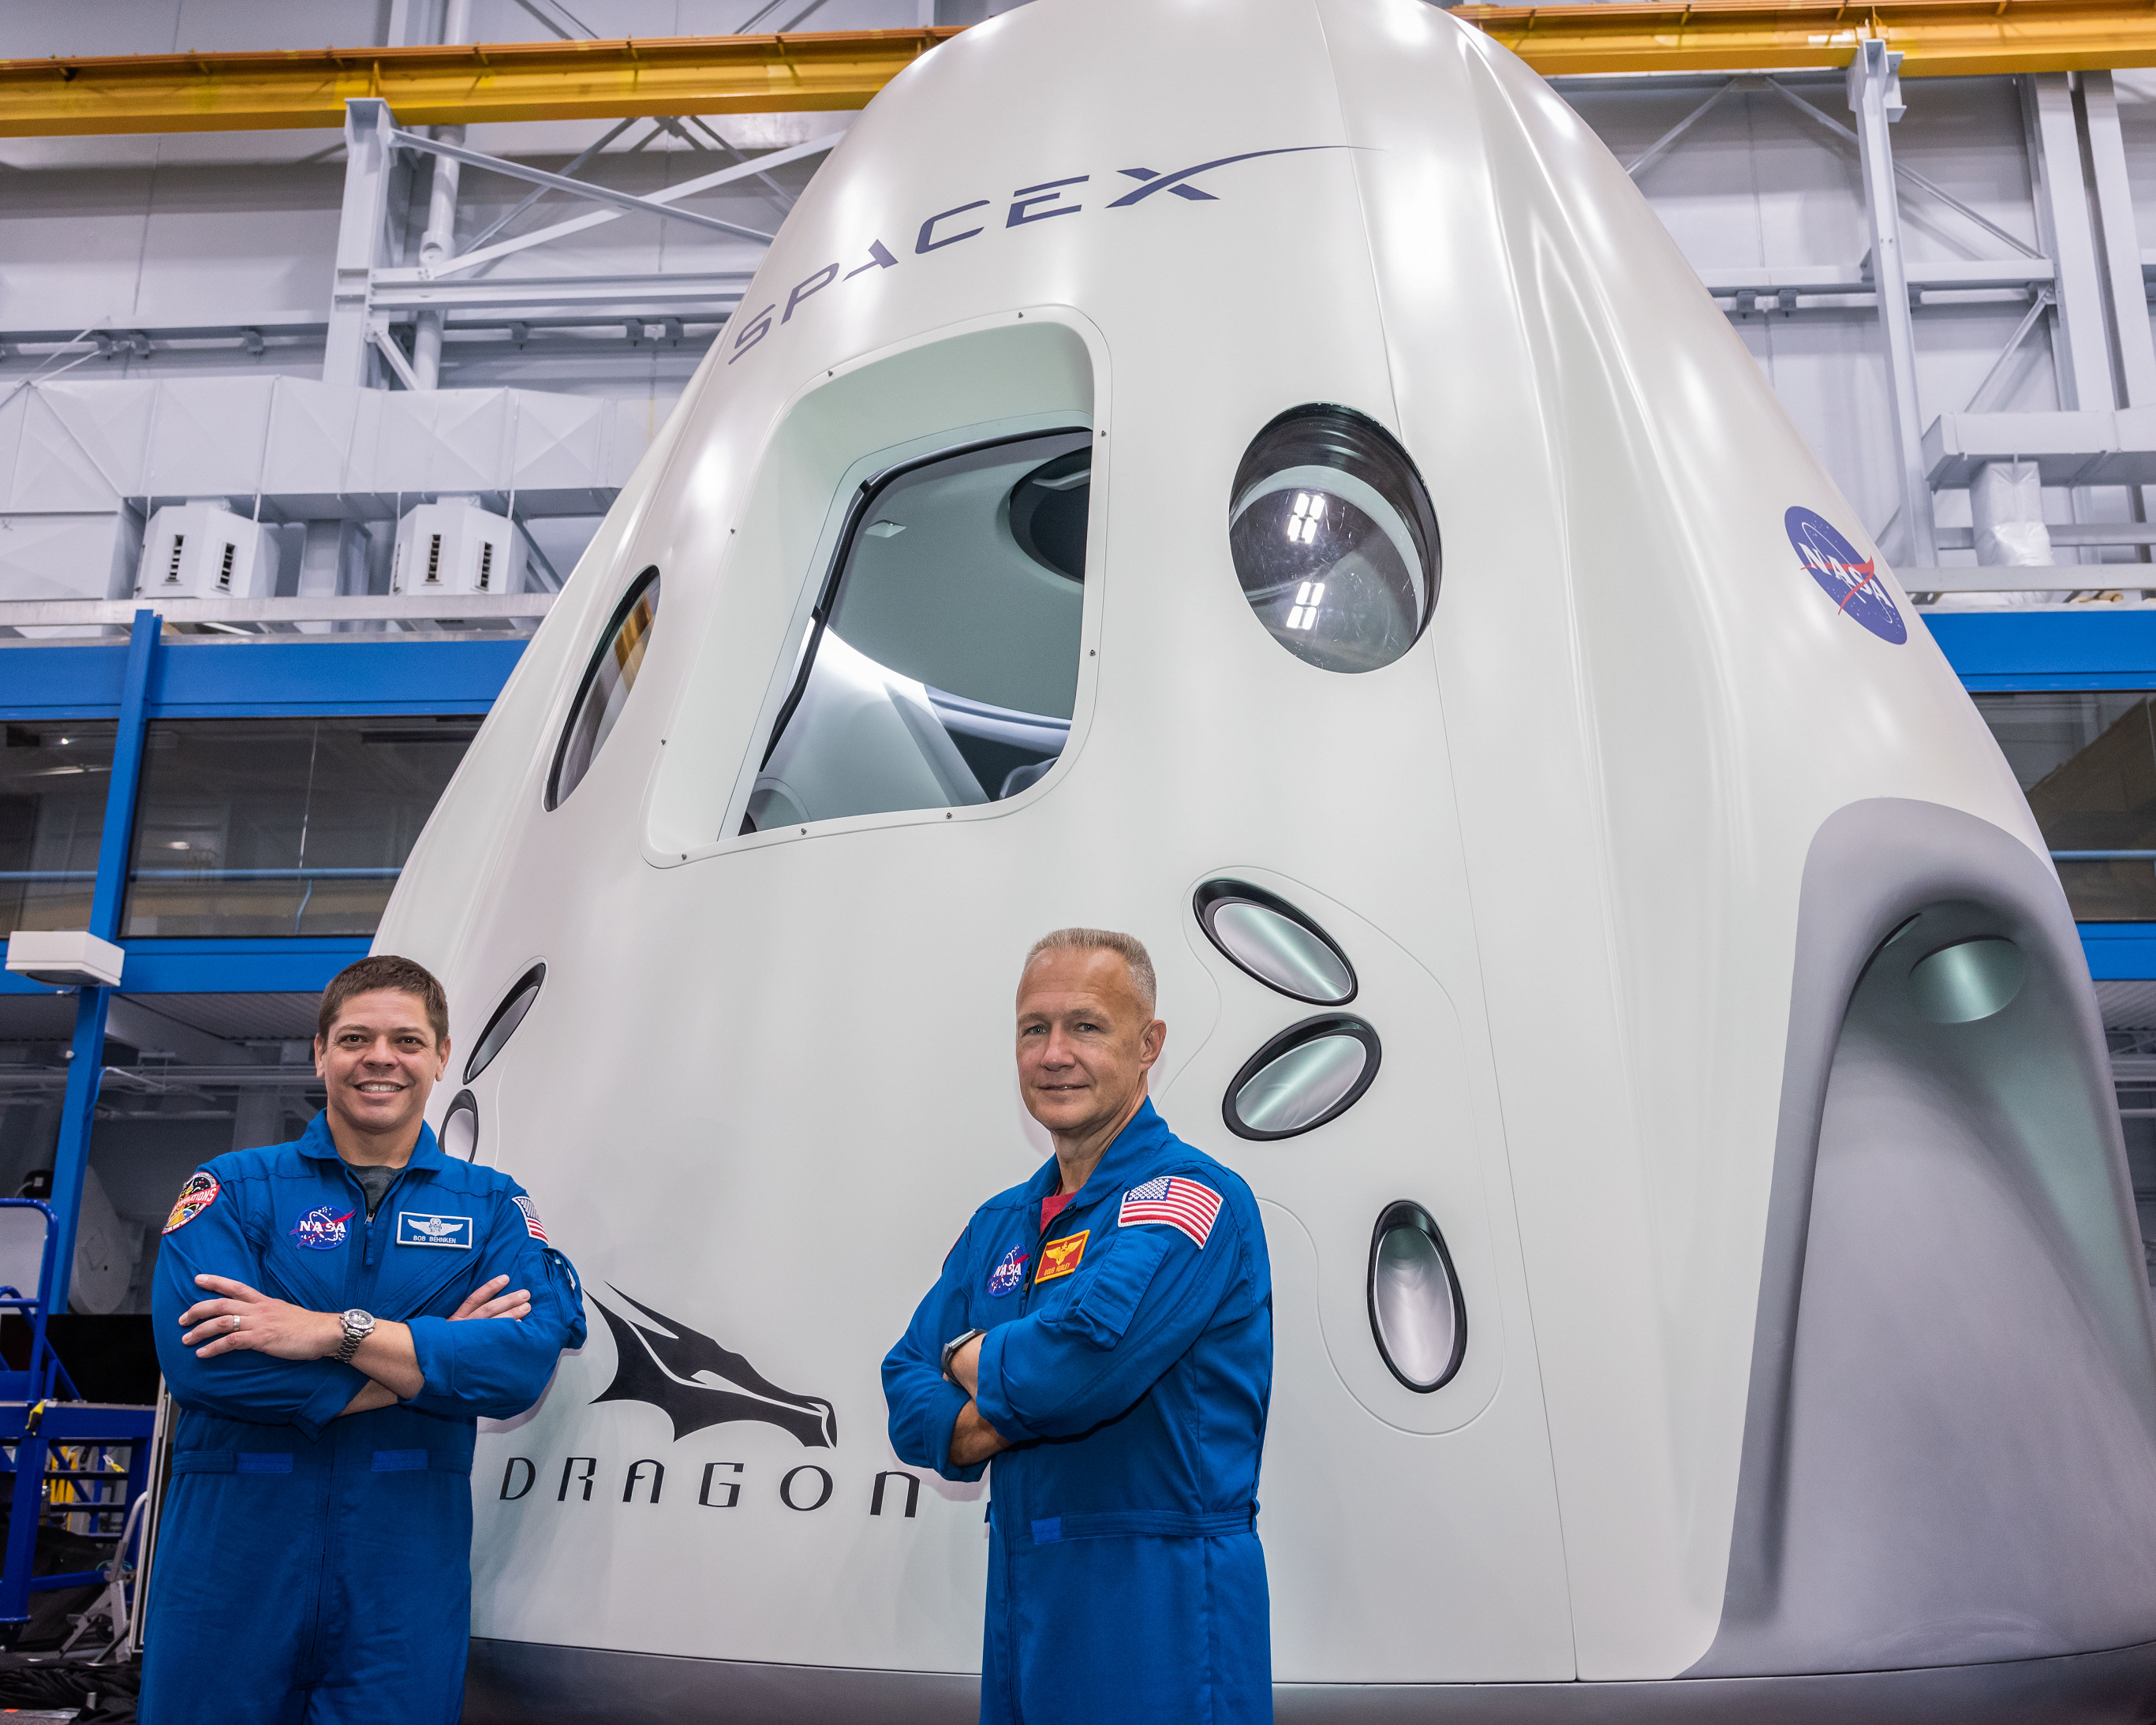 The Manned SpaceX Demo-2 Mission